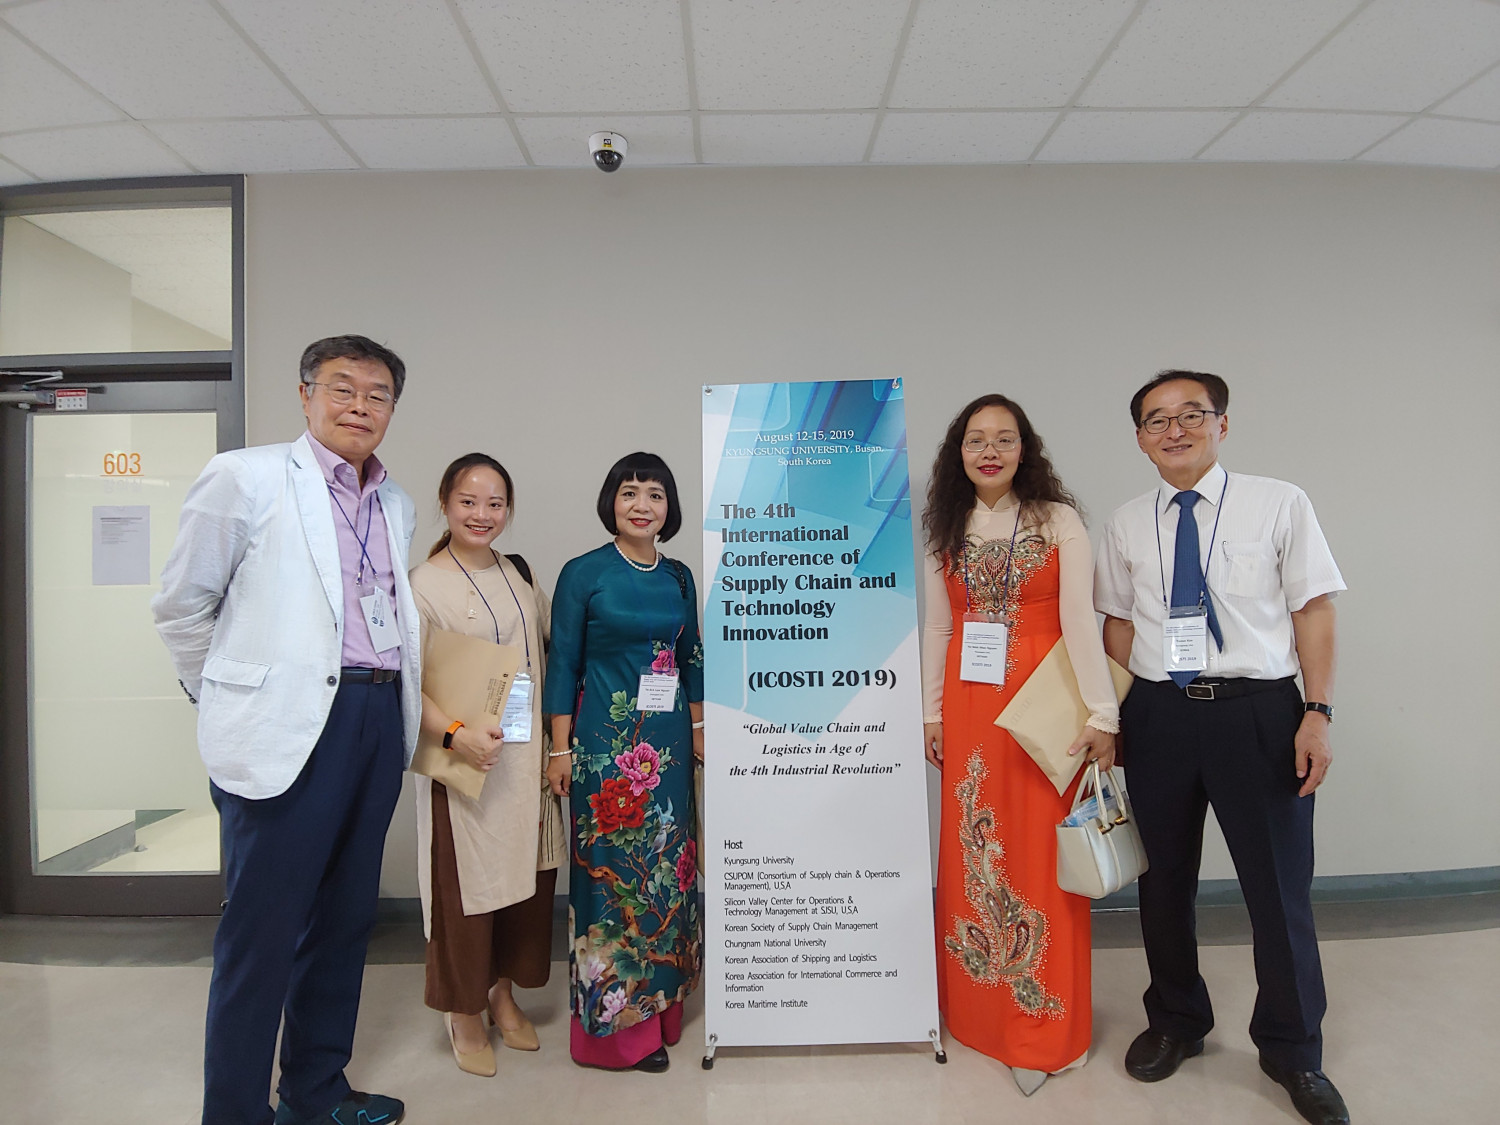 Thuongmai University participation in the International Conference of Supply Chain and Technology Innovation ICOSTI 2019